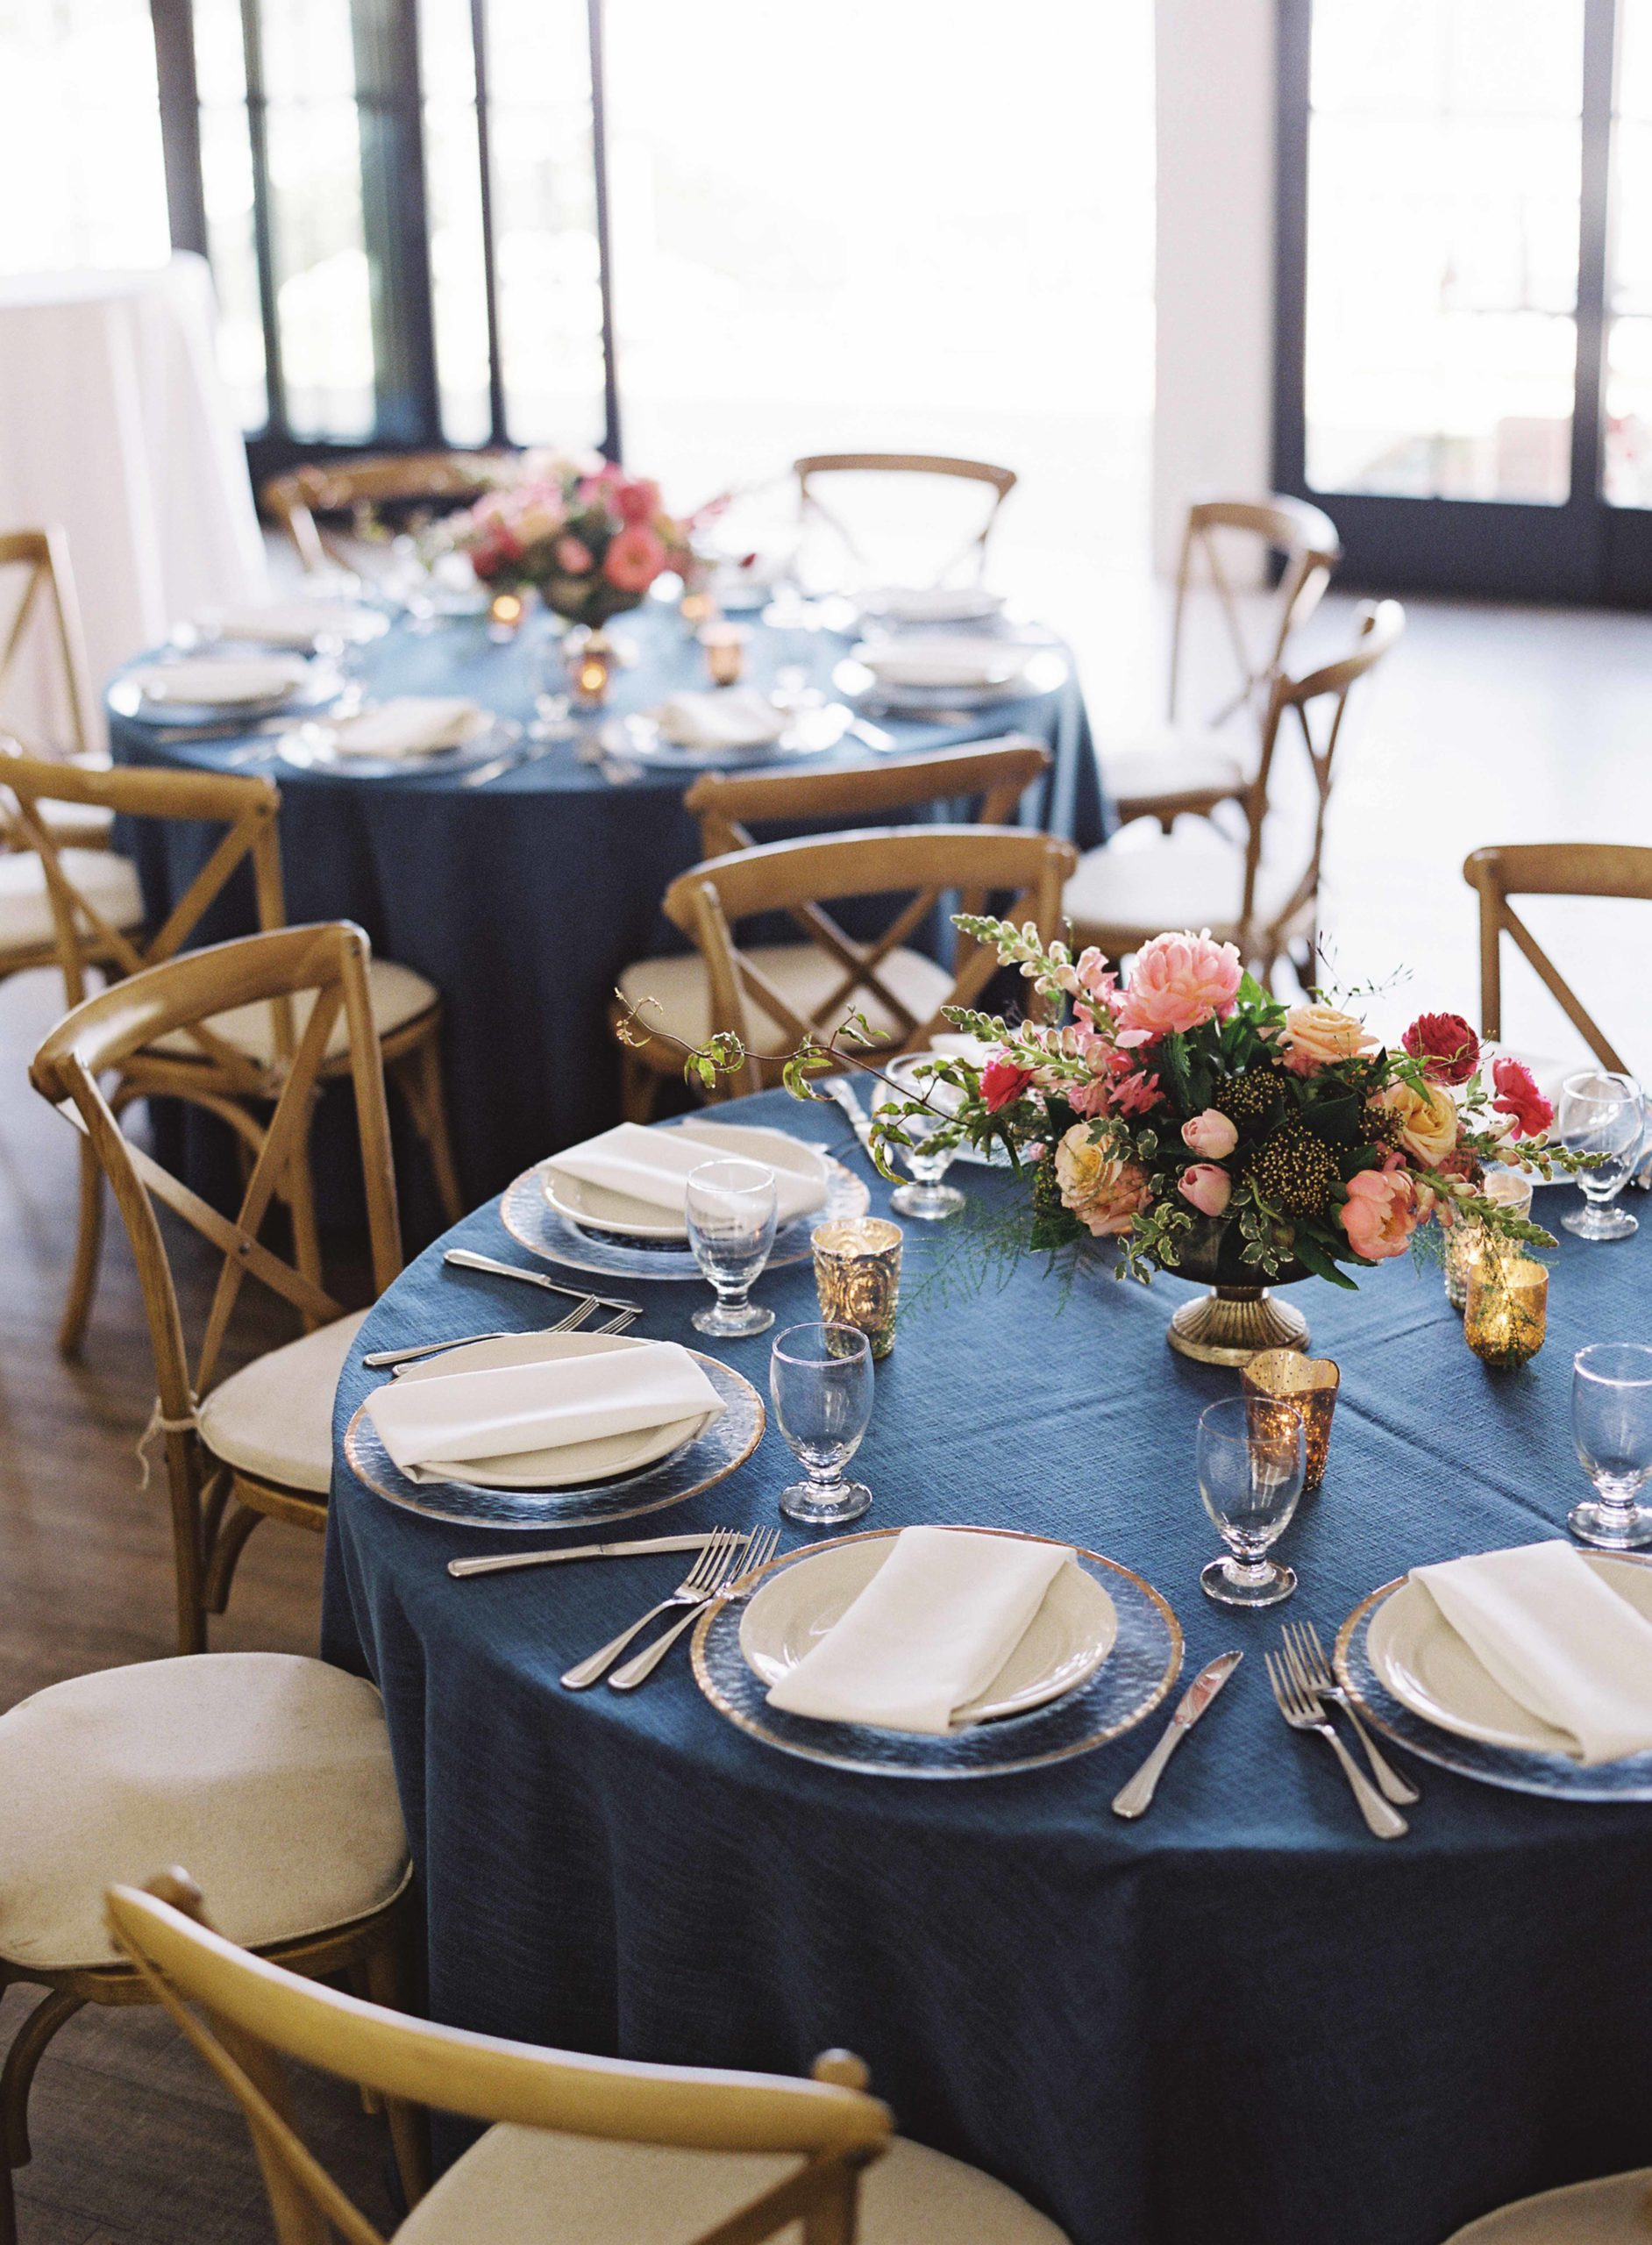 Wedding reception in blue, hot pink, and peach with wooden vineyard chairs and gold accents - Seattle Wedding Flowers by Flora Nova Design; Hot pink and peach wedding at Roche Harbor Resort